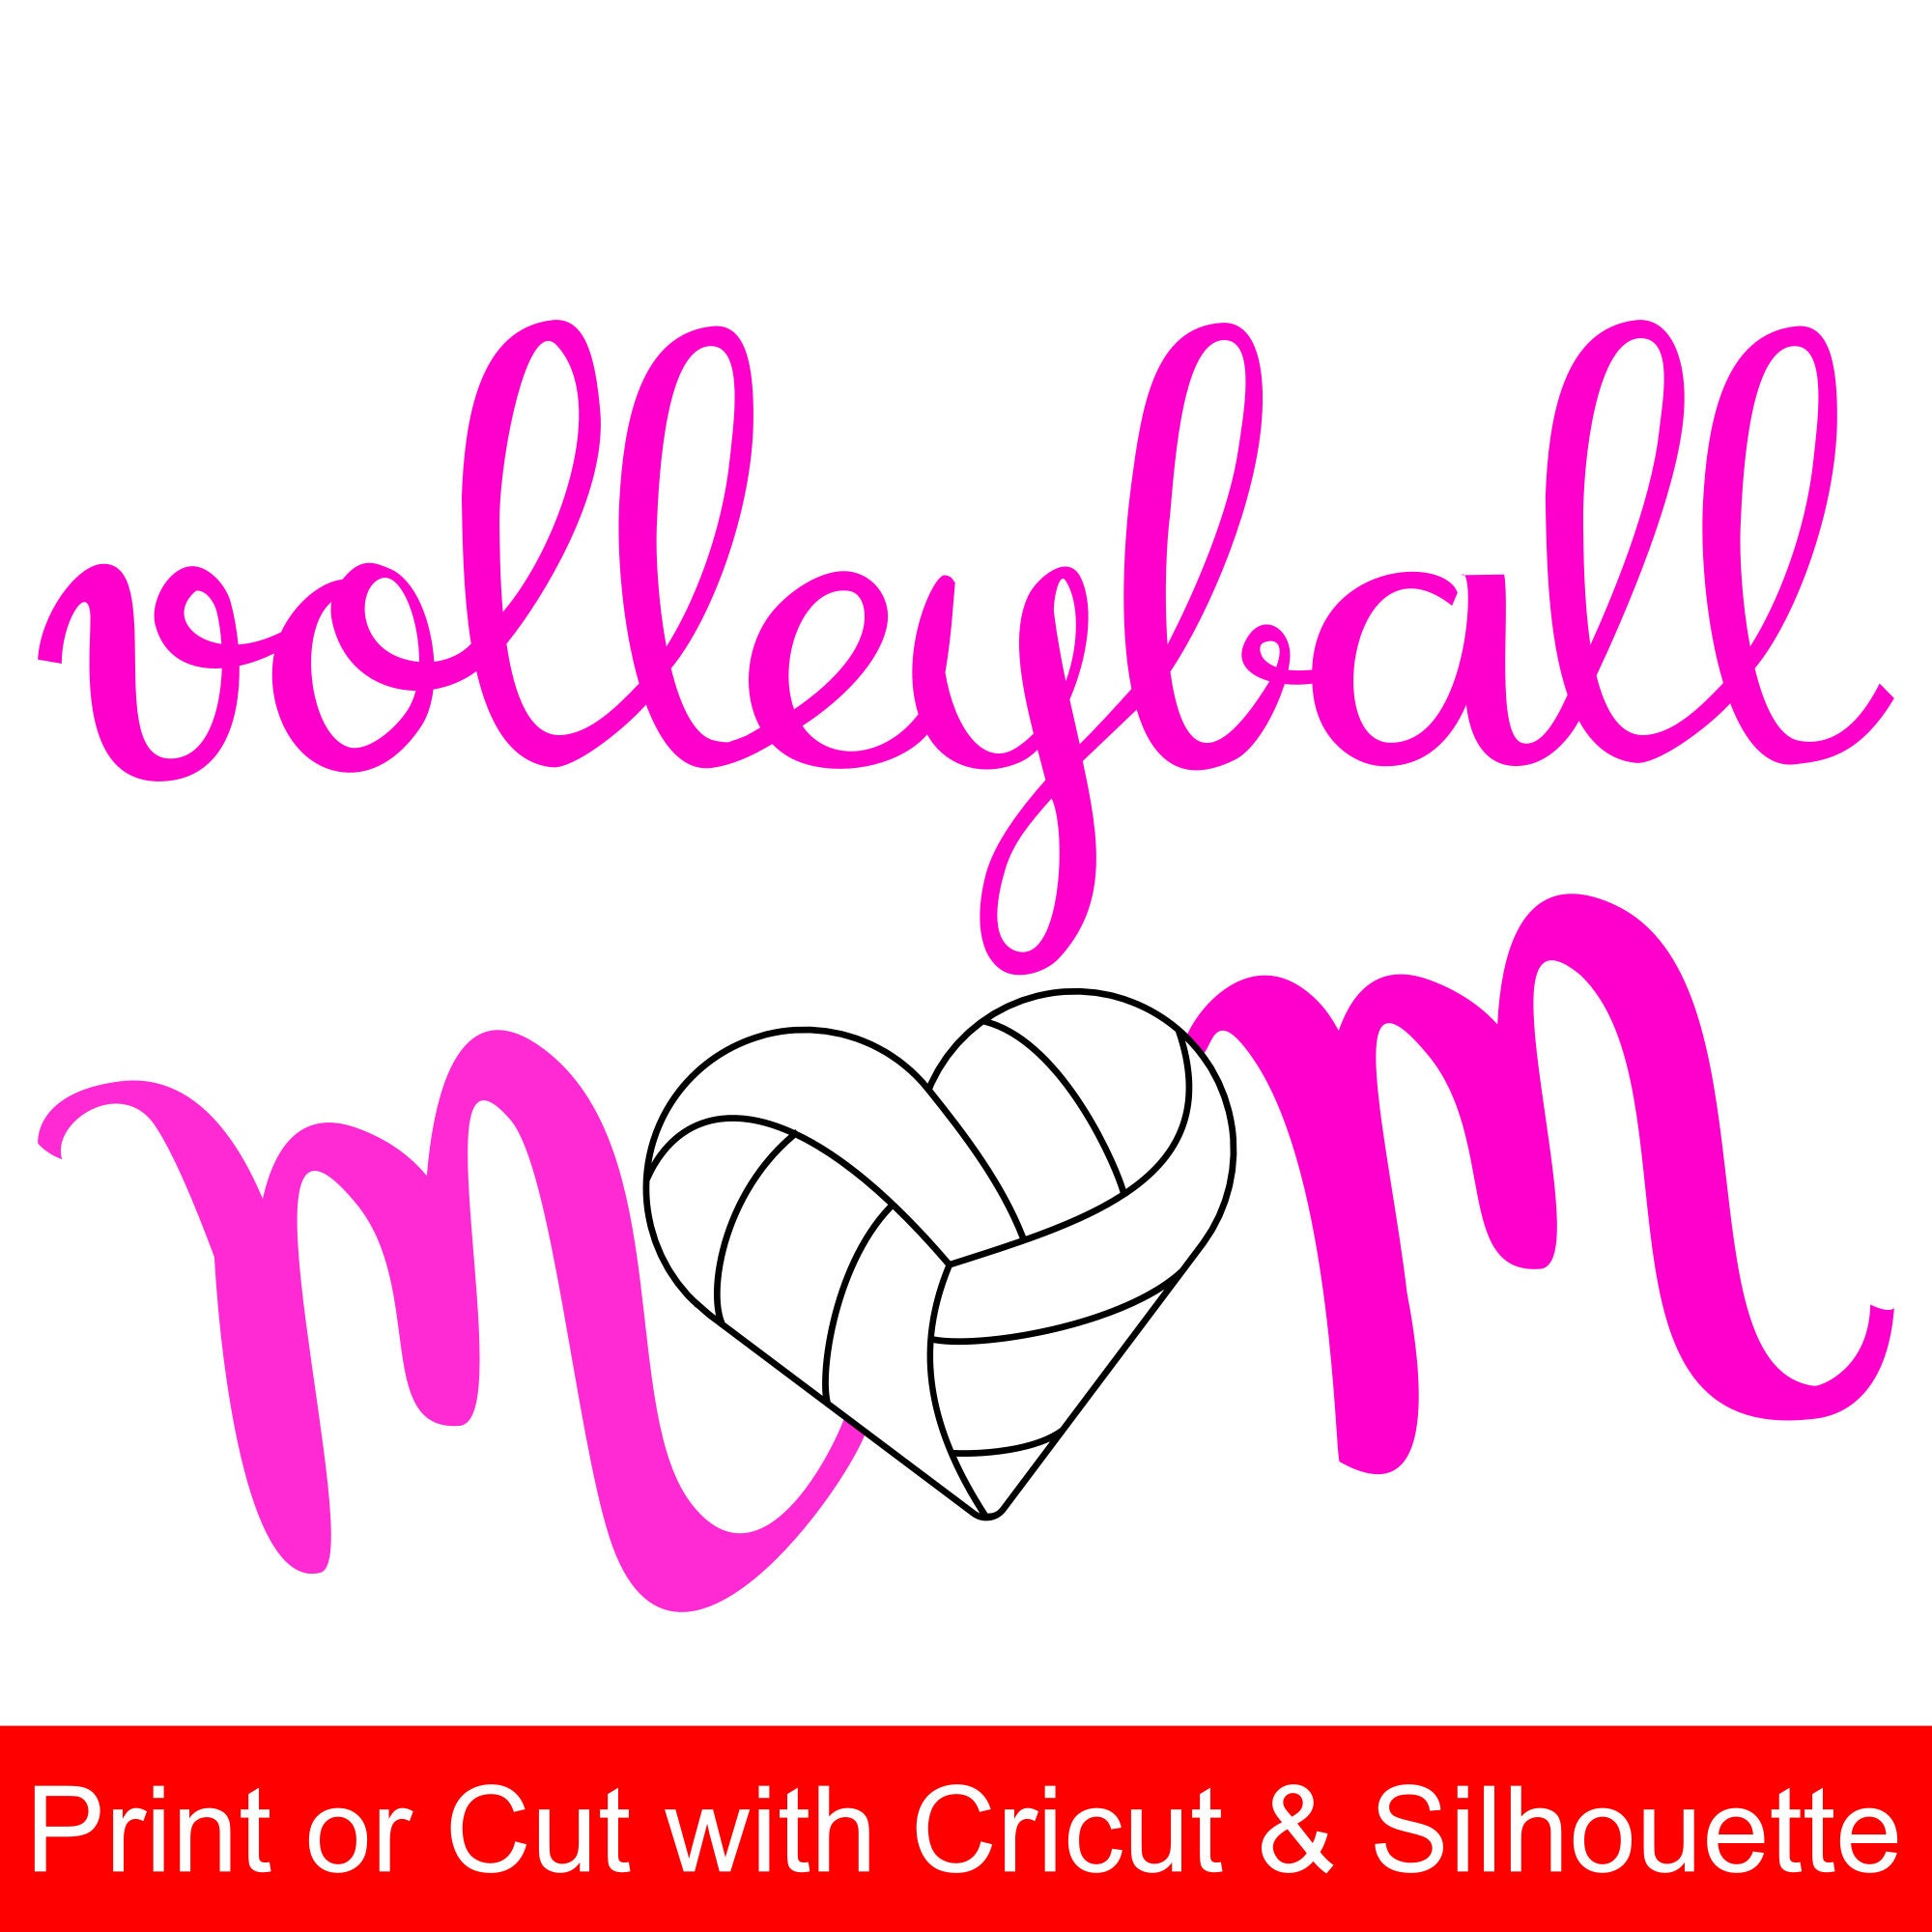 Volleyball Mom Svg File And Printable Clipart To Make A Volleyball Mom Shirt Or Gift To Wear During The Game To Cheer The Team